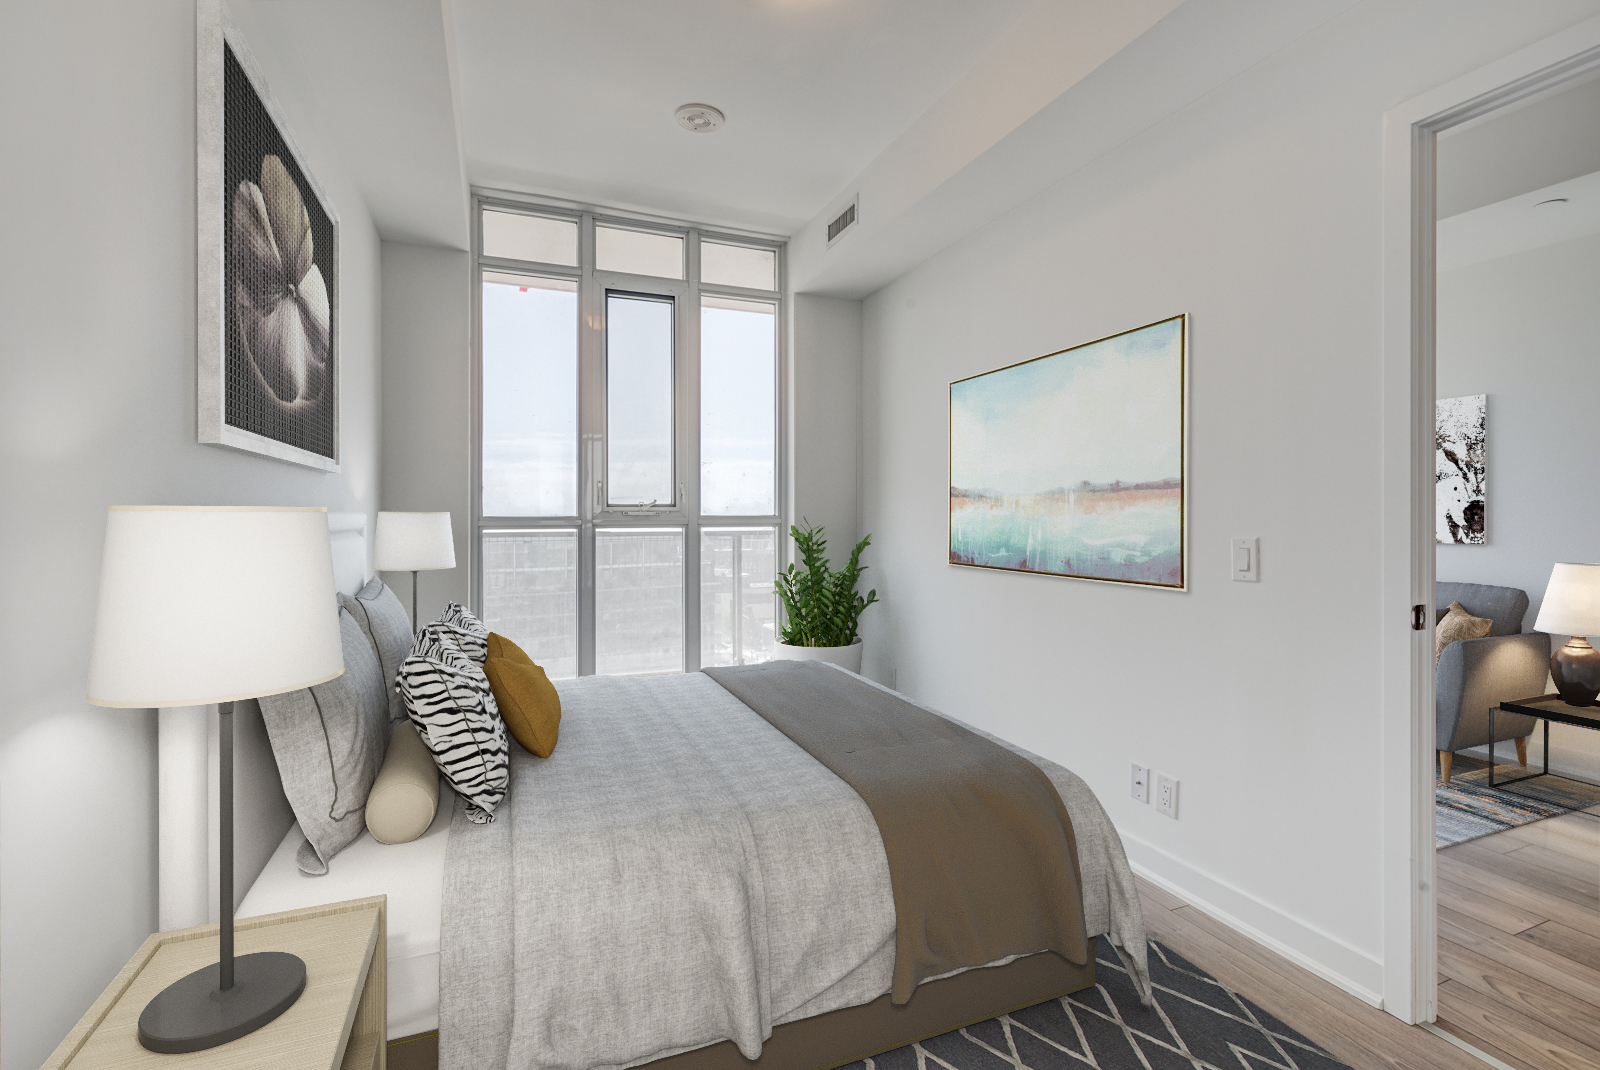 Master bedroom with 3D bed and large windows.